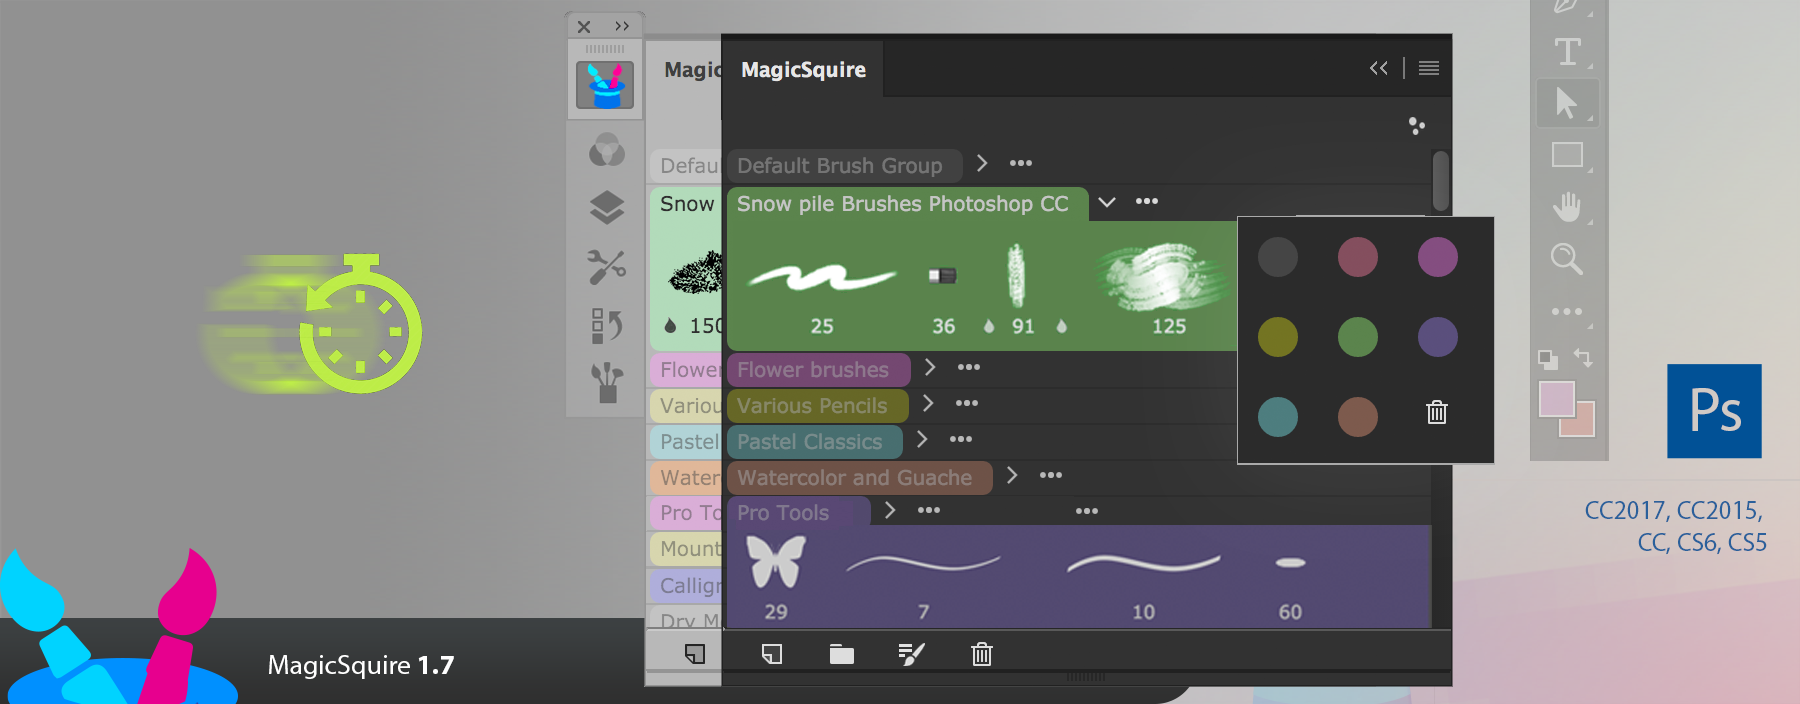 MagicSquire 1.7, faster, new group colors, load multiple brush files